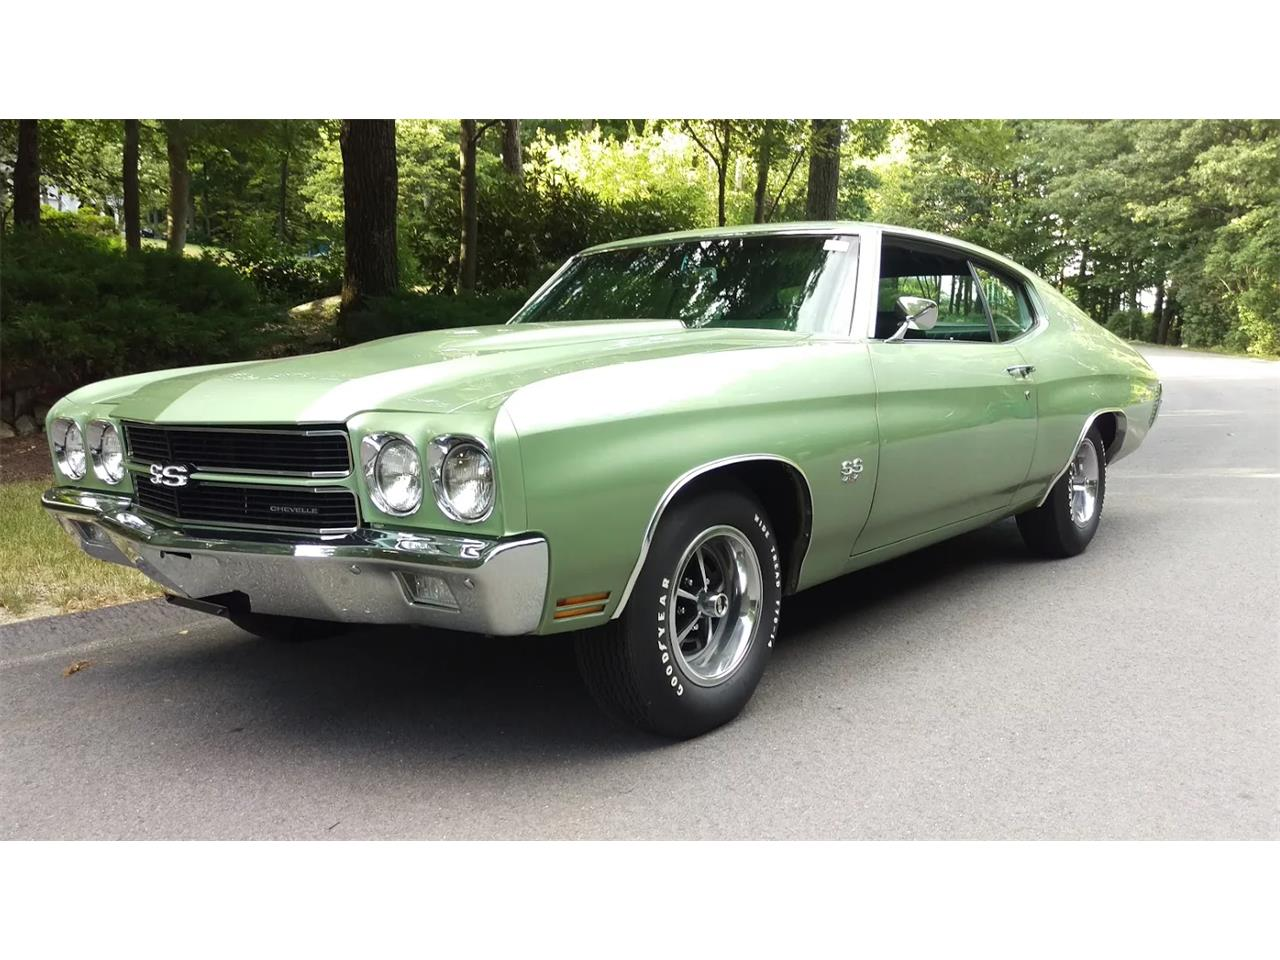 Large Picture of '70 Chevelle SS located in Princeton Massachusetts - $69,000.00 Offered by a Private Seller - IWGL